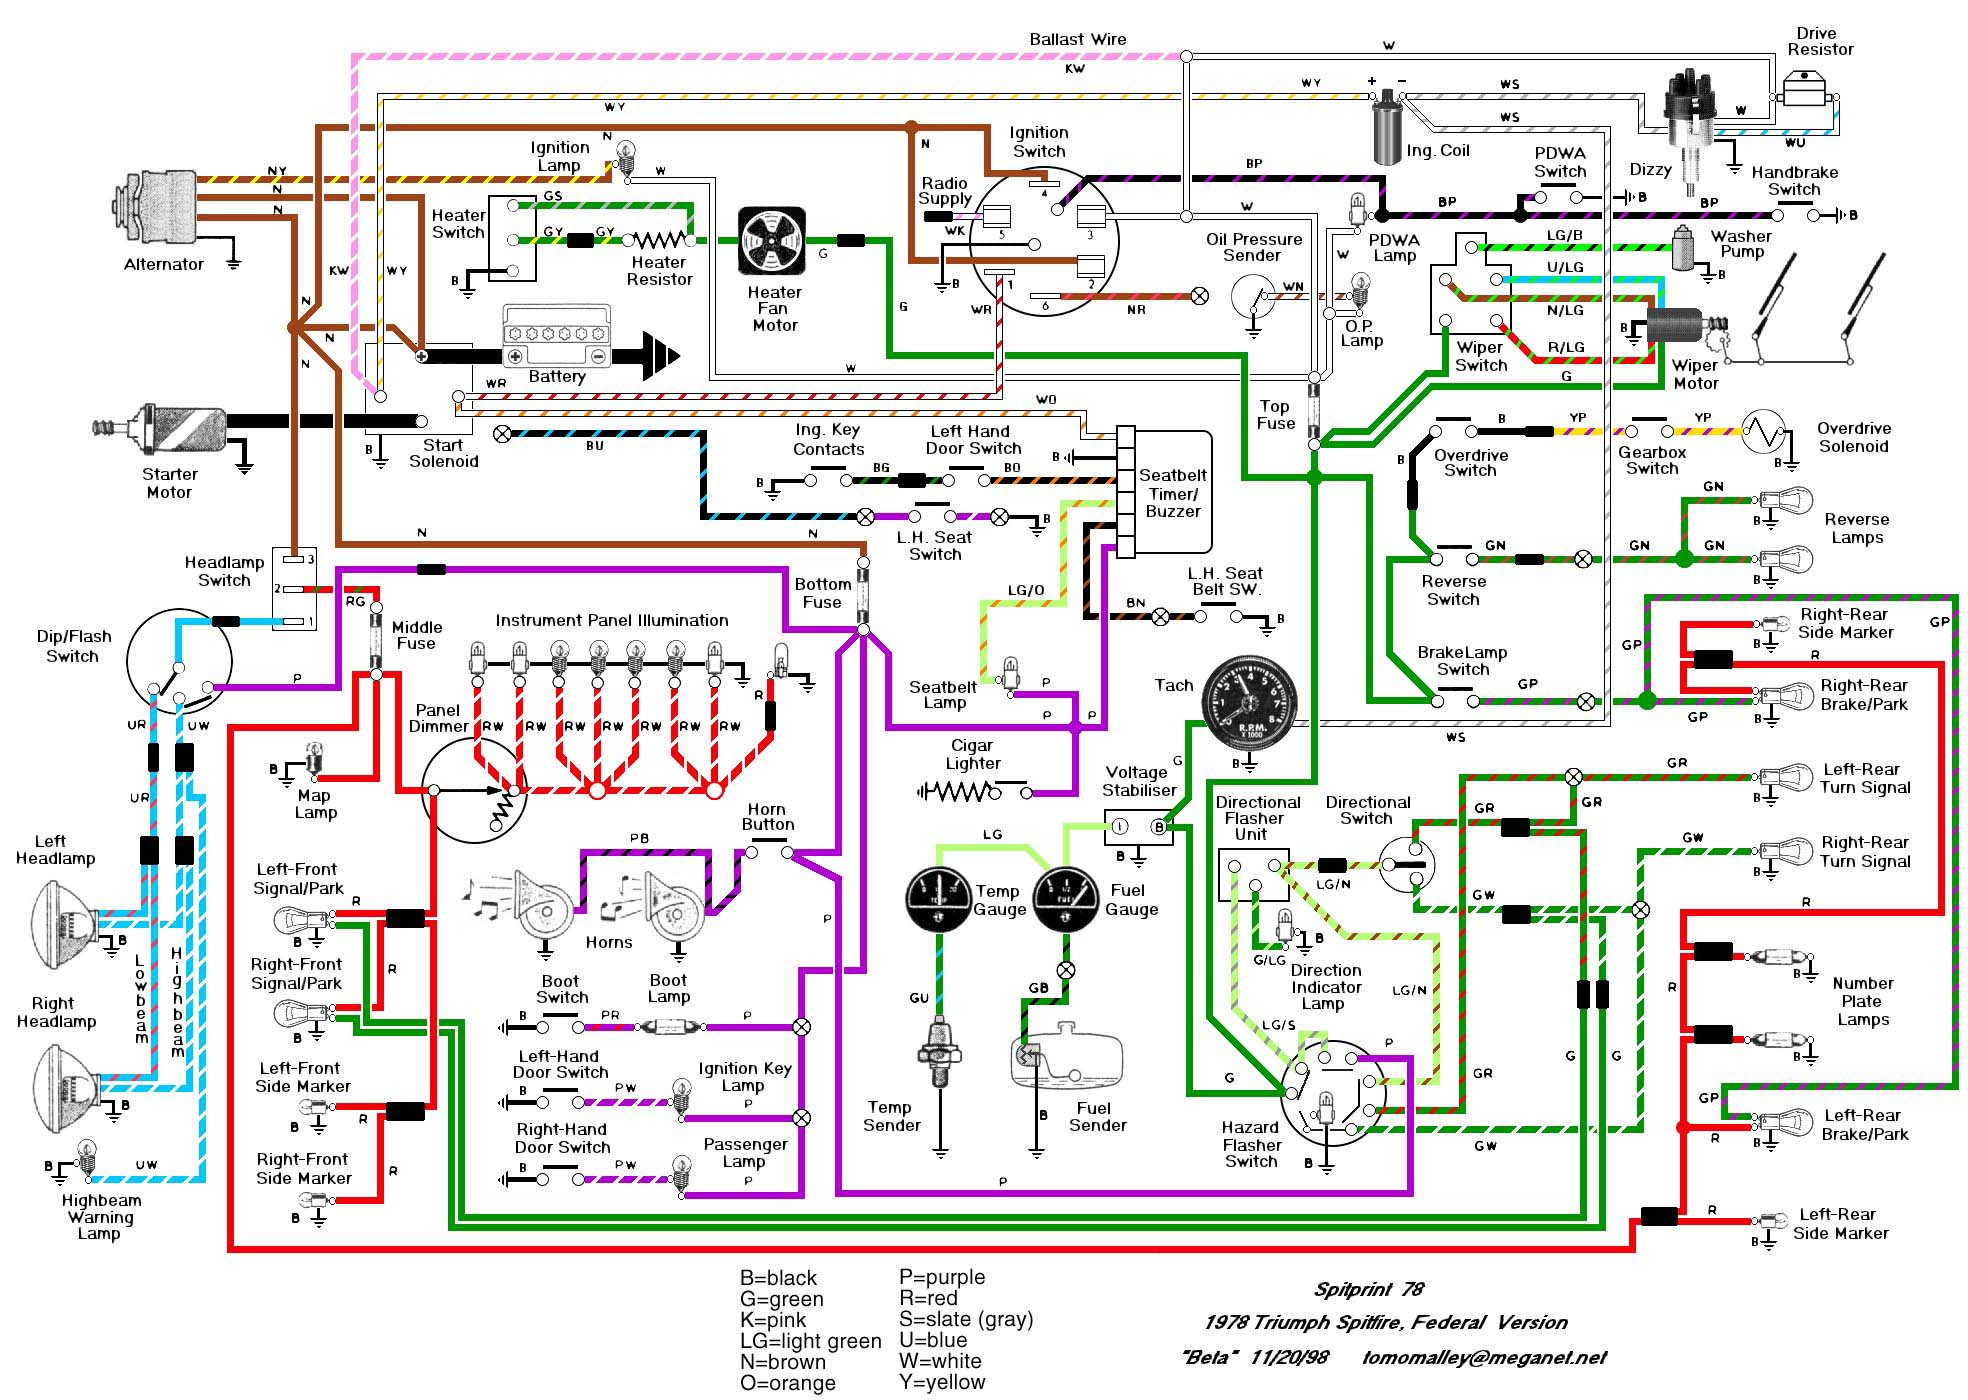 ingersoll rand air compressor wiring diagram with Blah on Watch likewise Sullair 185 Wiring Diagram together with C bell Hausfeld Parts Diagram additionally Product 200367716 200367716 furthermore Wiring Diagram For 5hp Air  pressor.